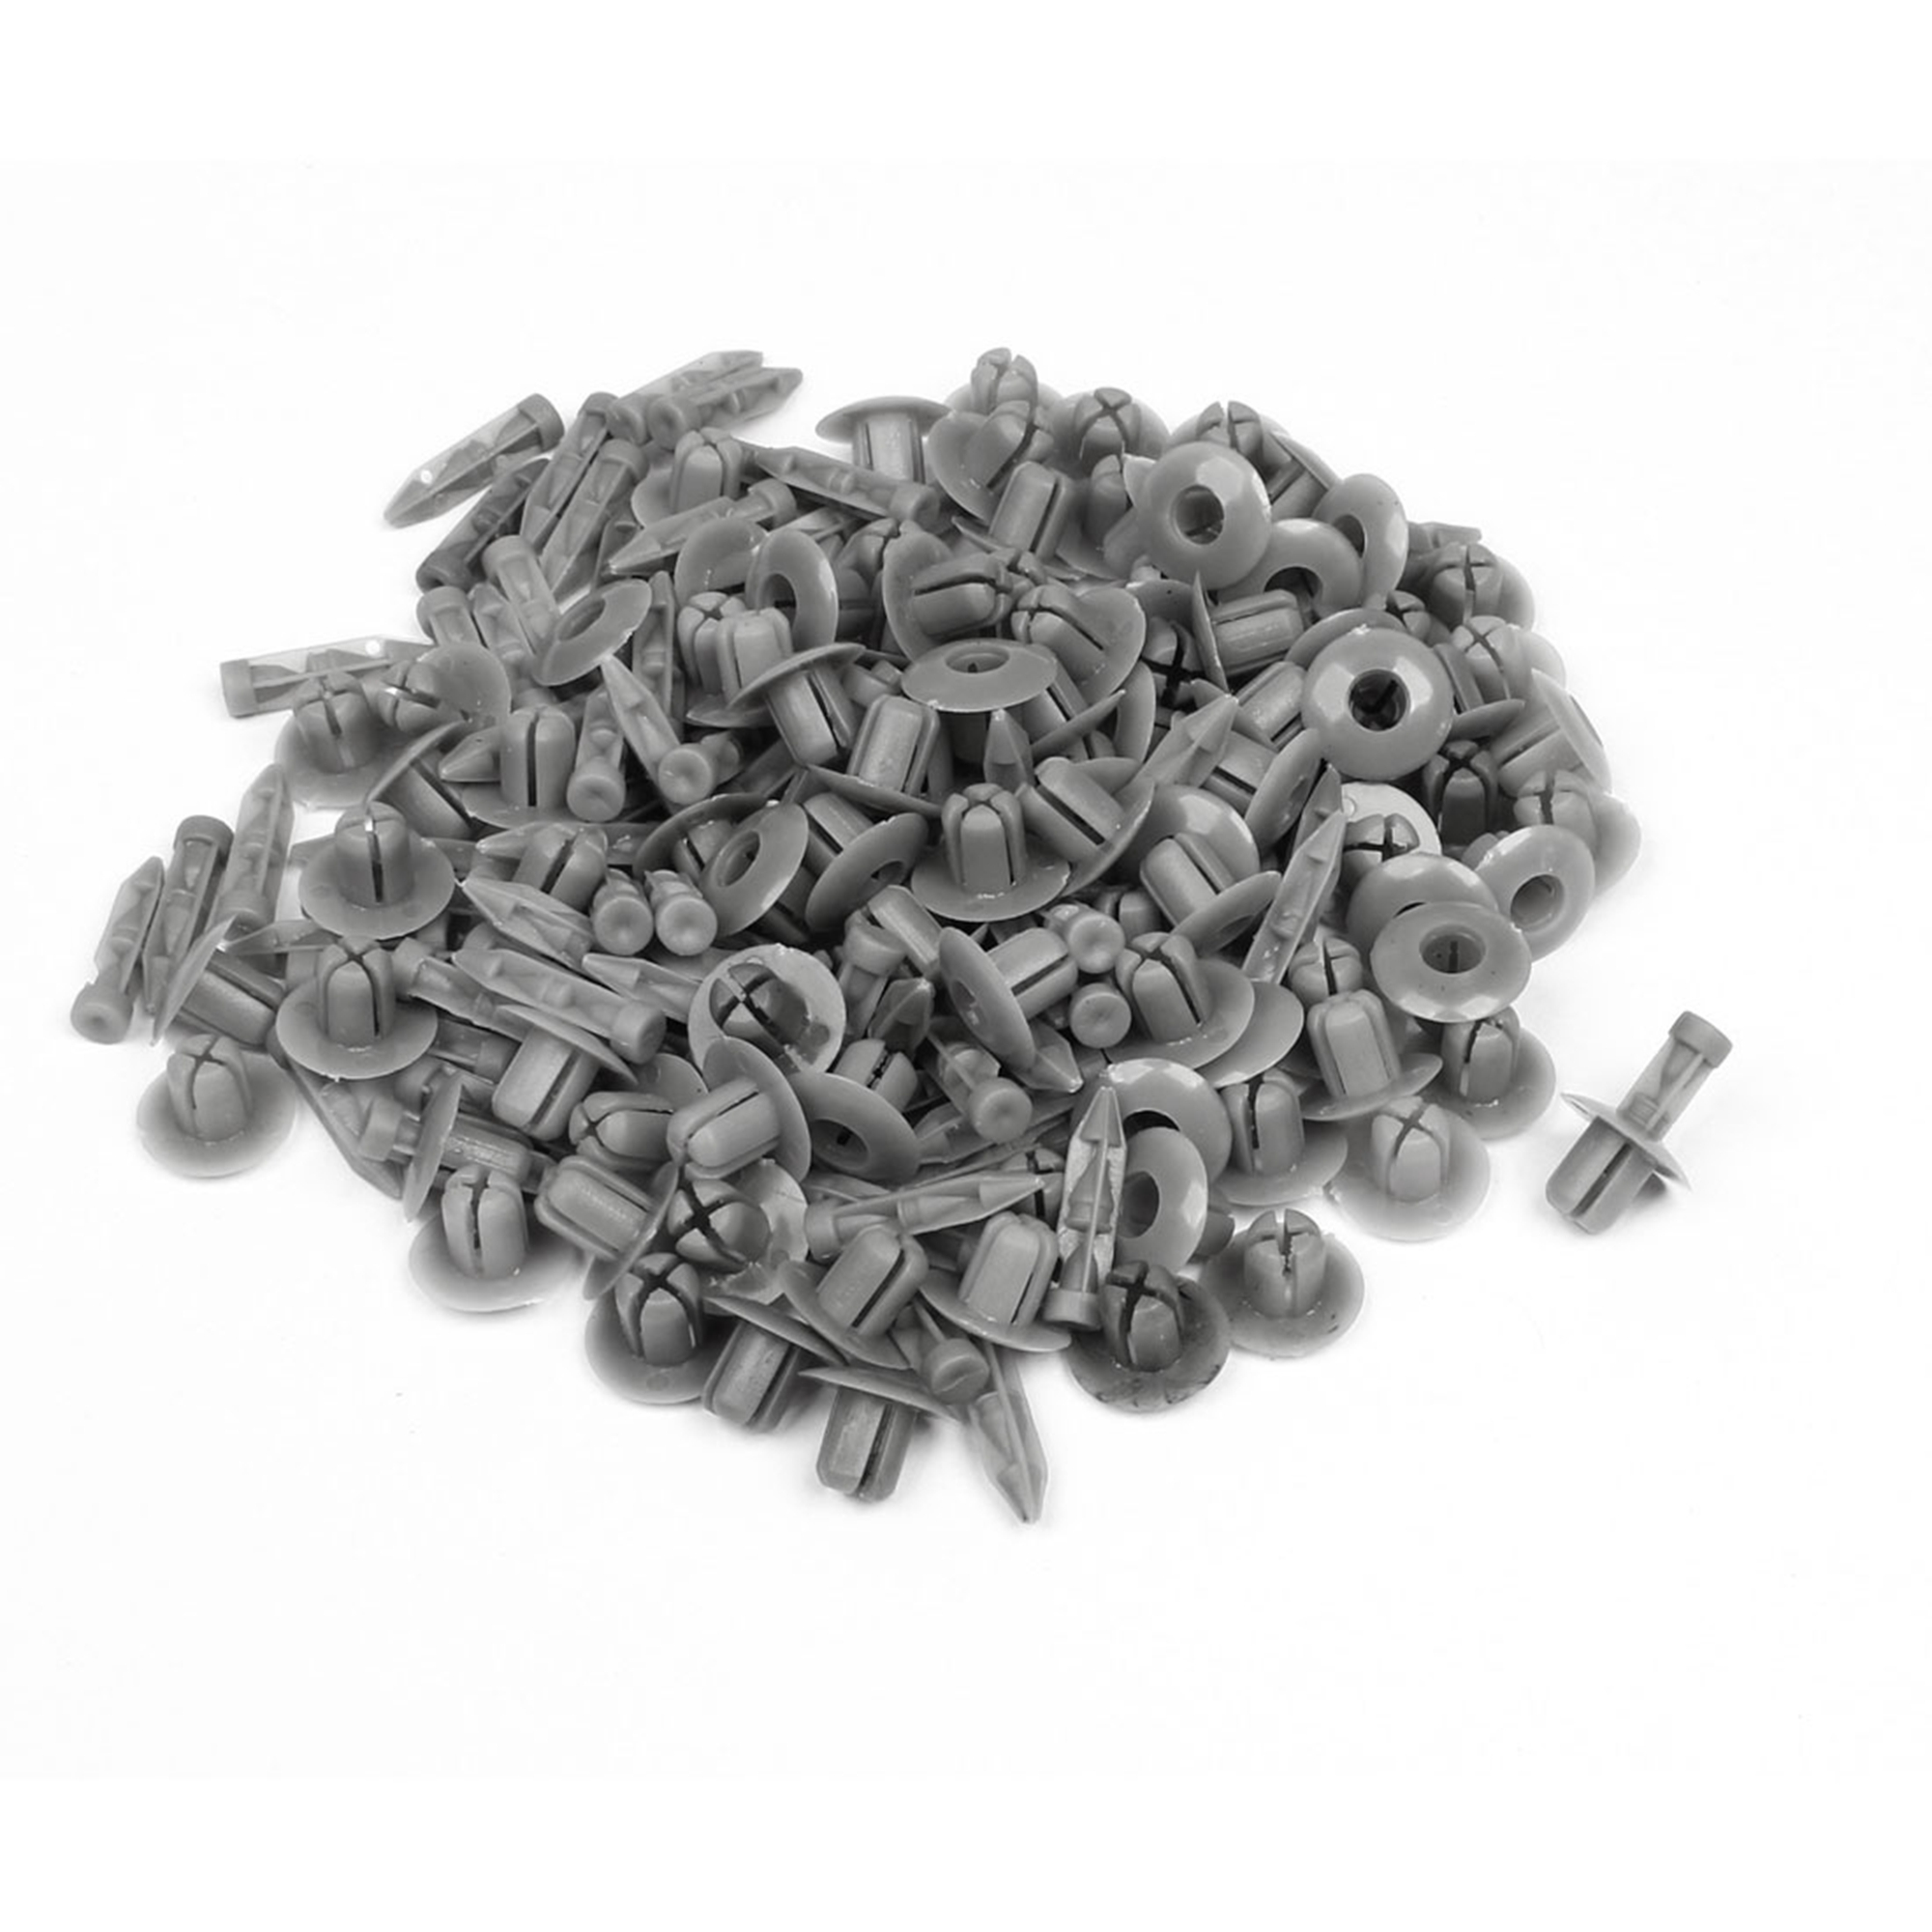 100 Pcs Auto Interior Door Trim Clips Plastic Rivet Fastener Gray 7mm hole